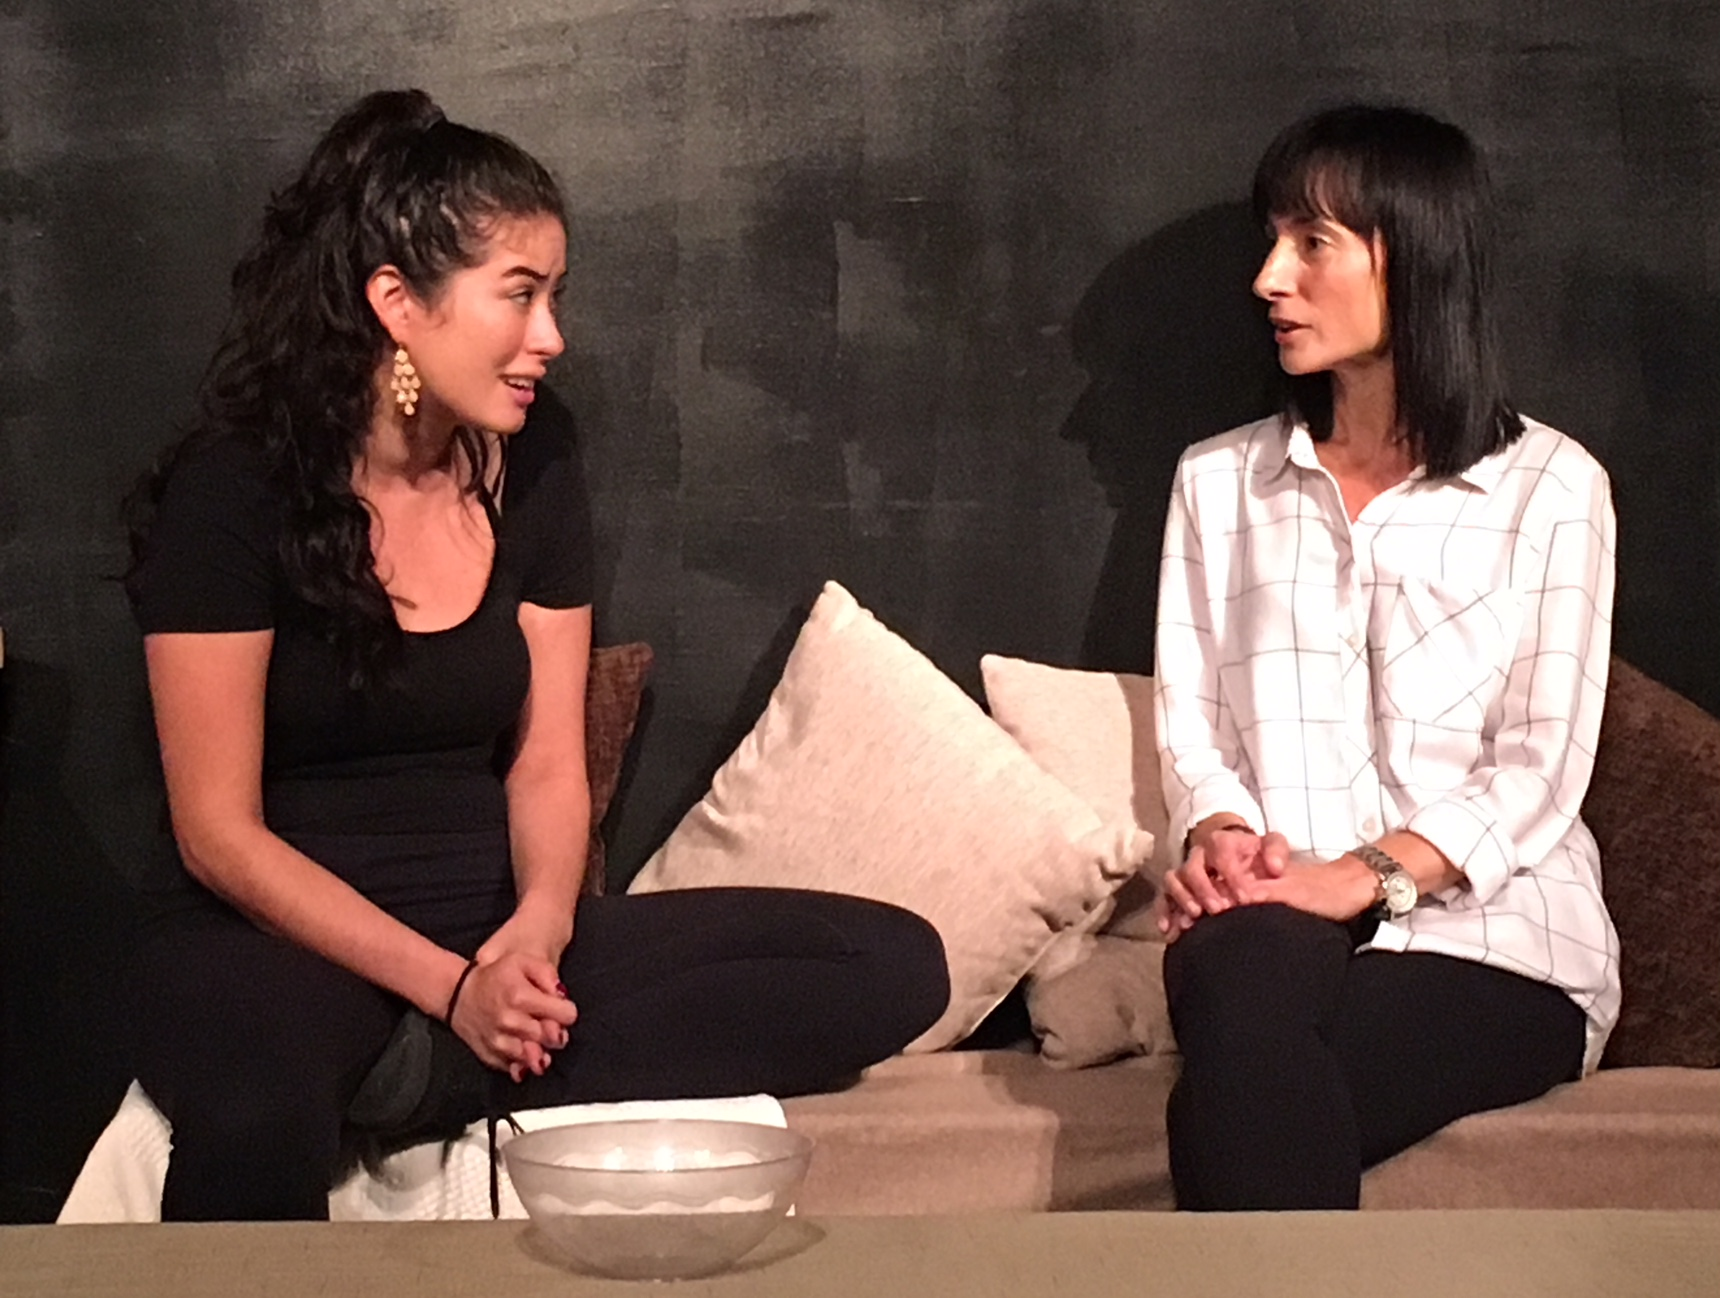 ERIKA YESENIA as Julie & JENNIFER PIERRO as Beth